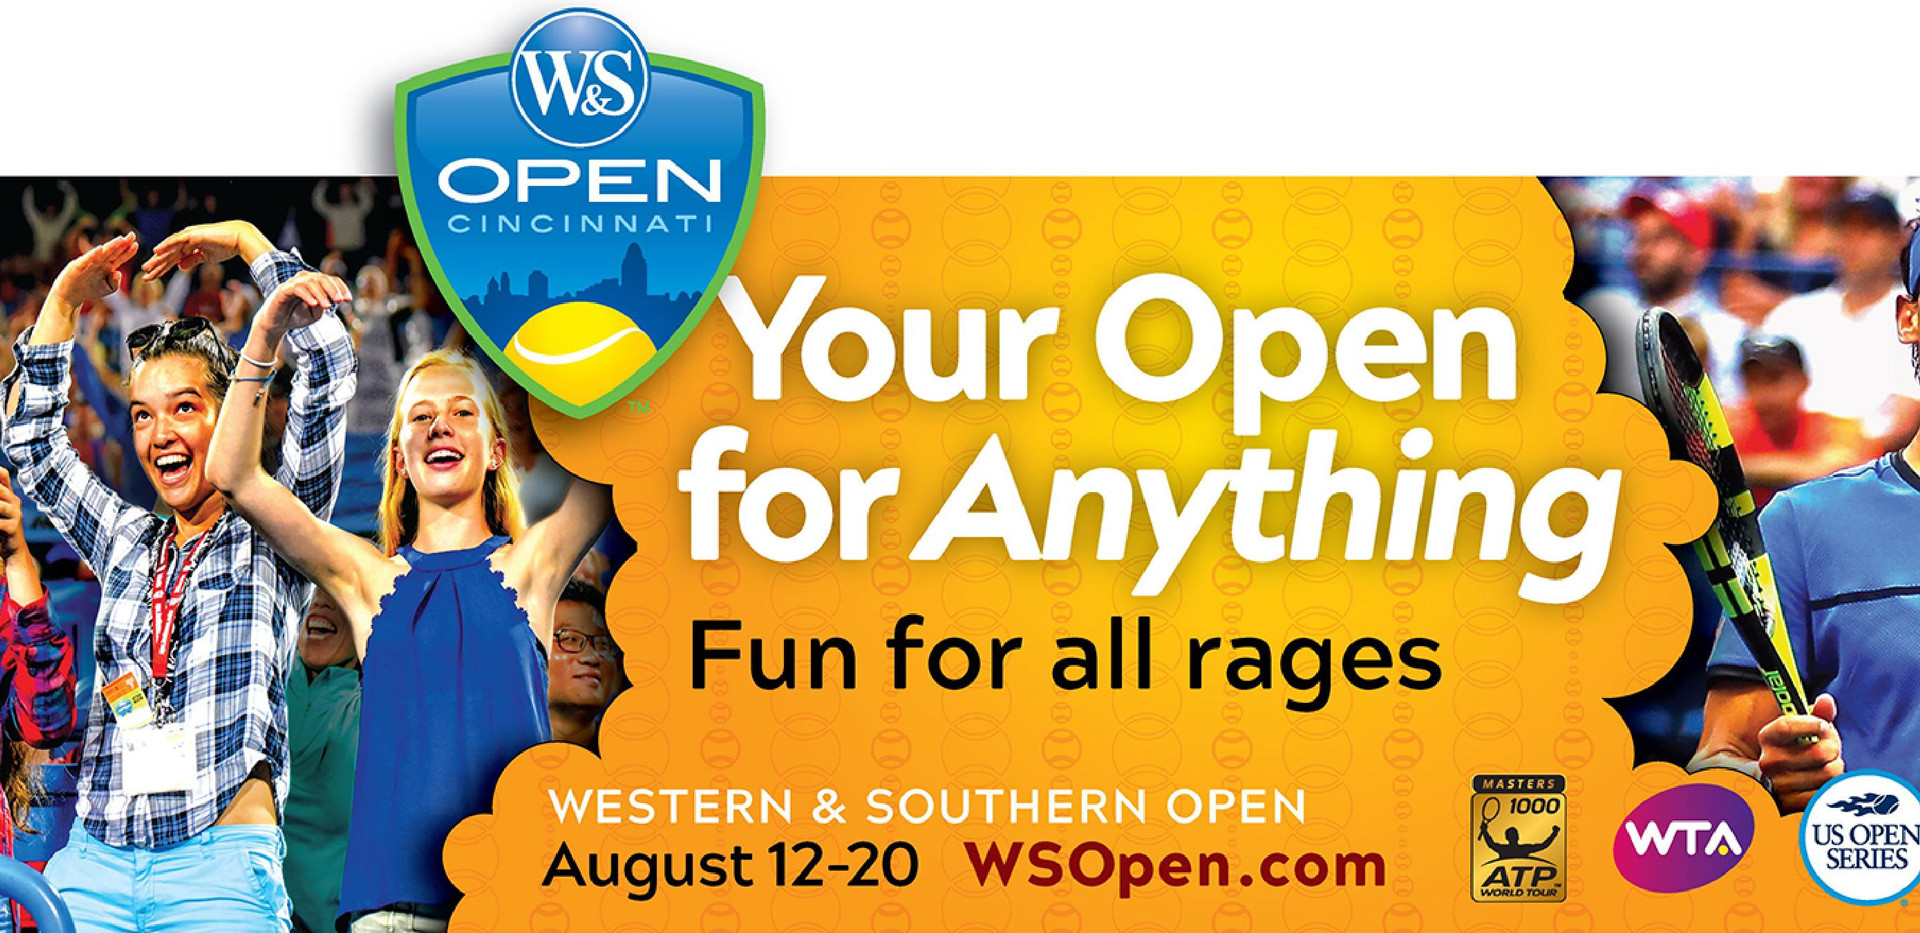 Western&SouthernOpen_Boards 17-page-003.